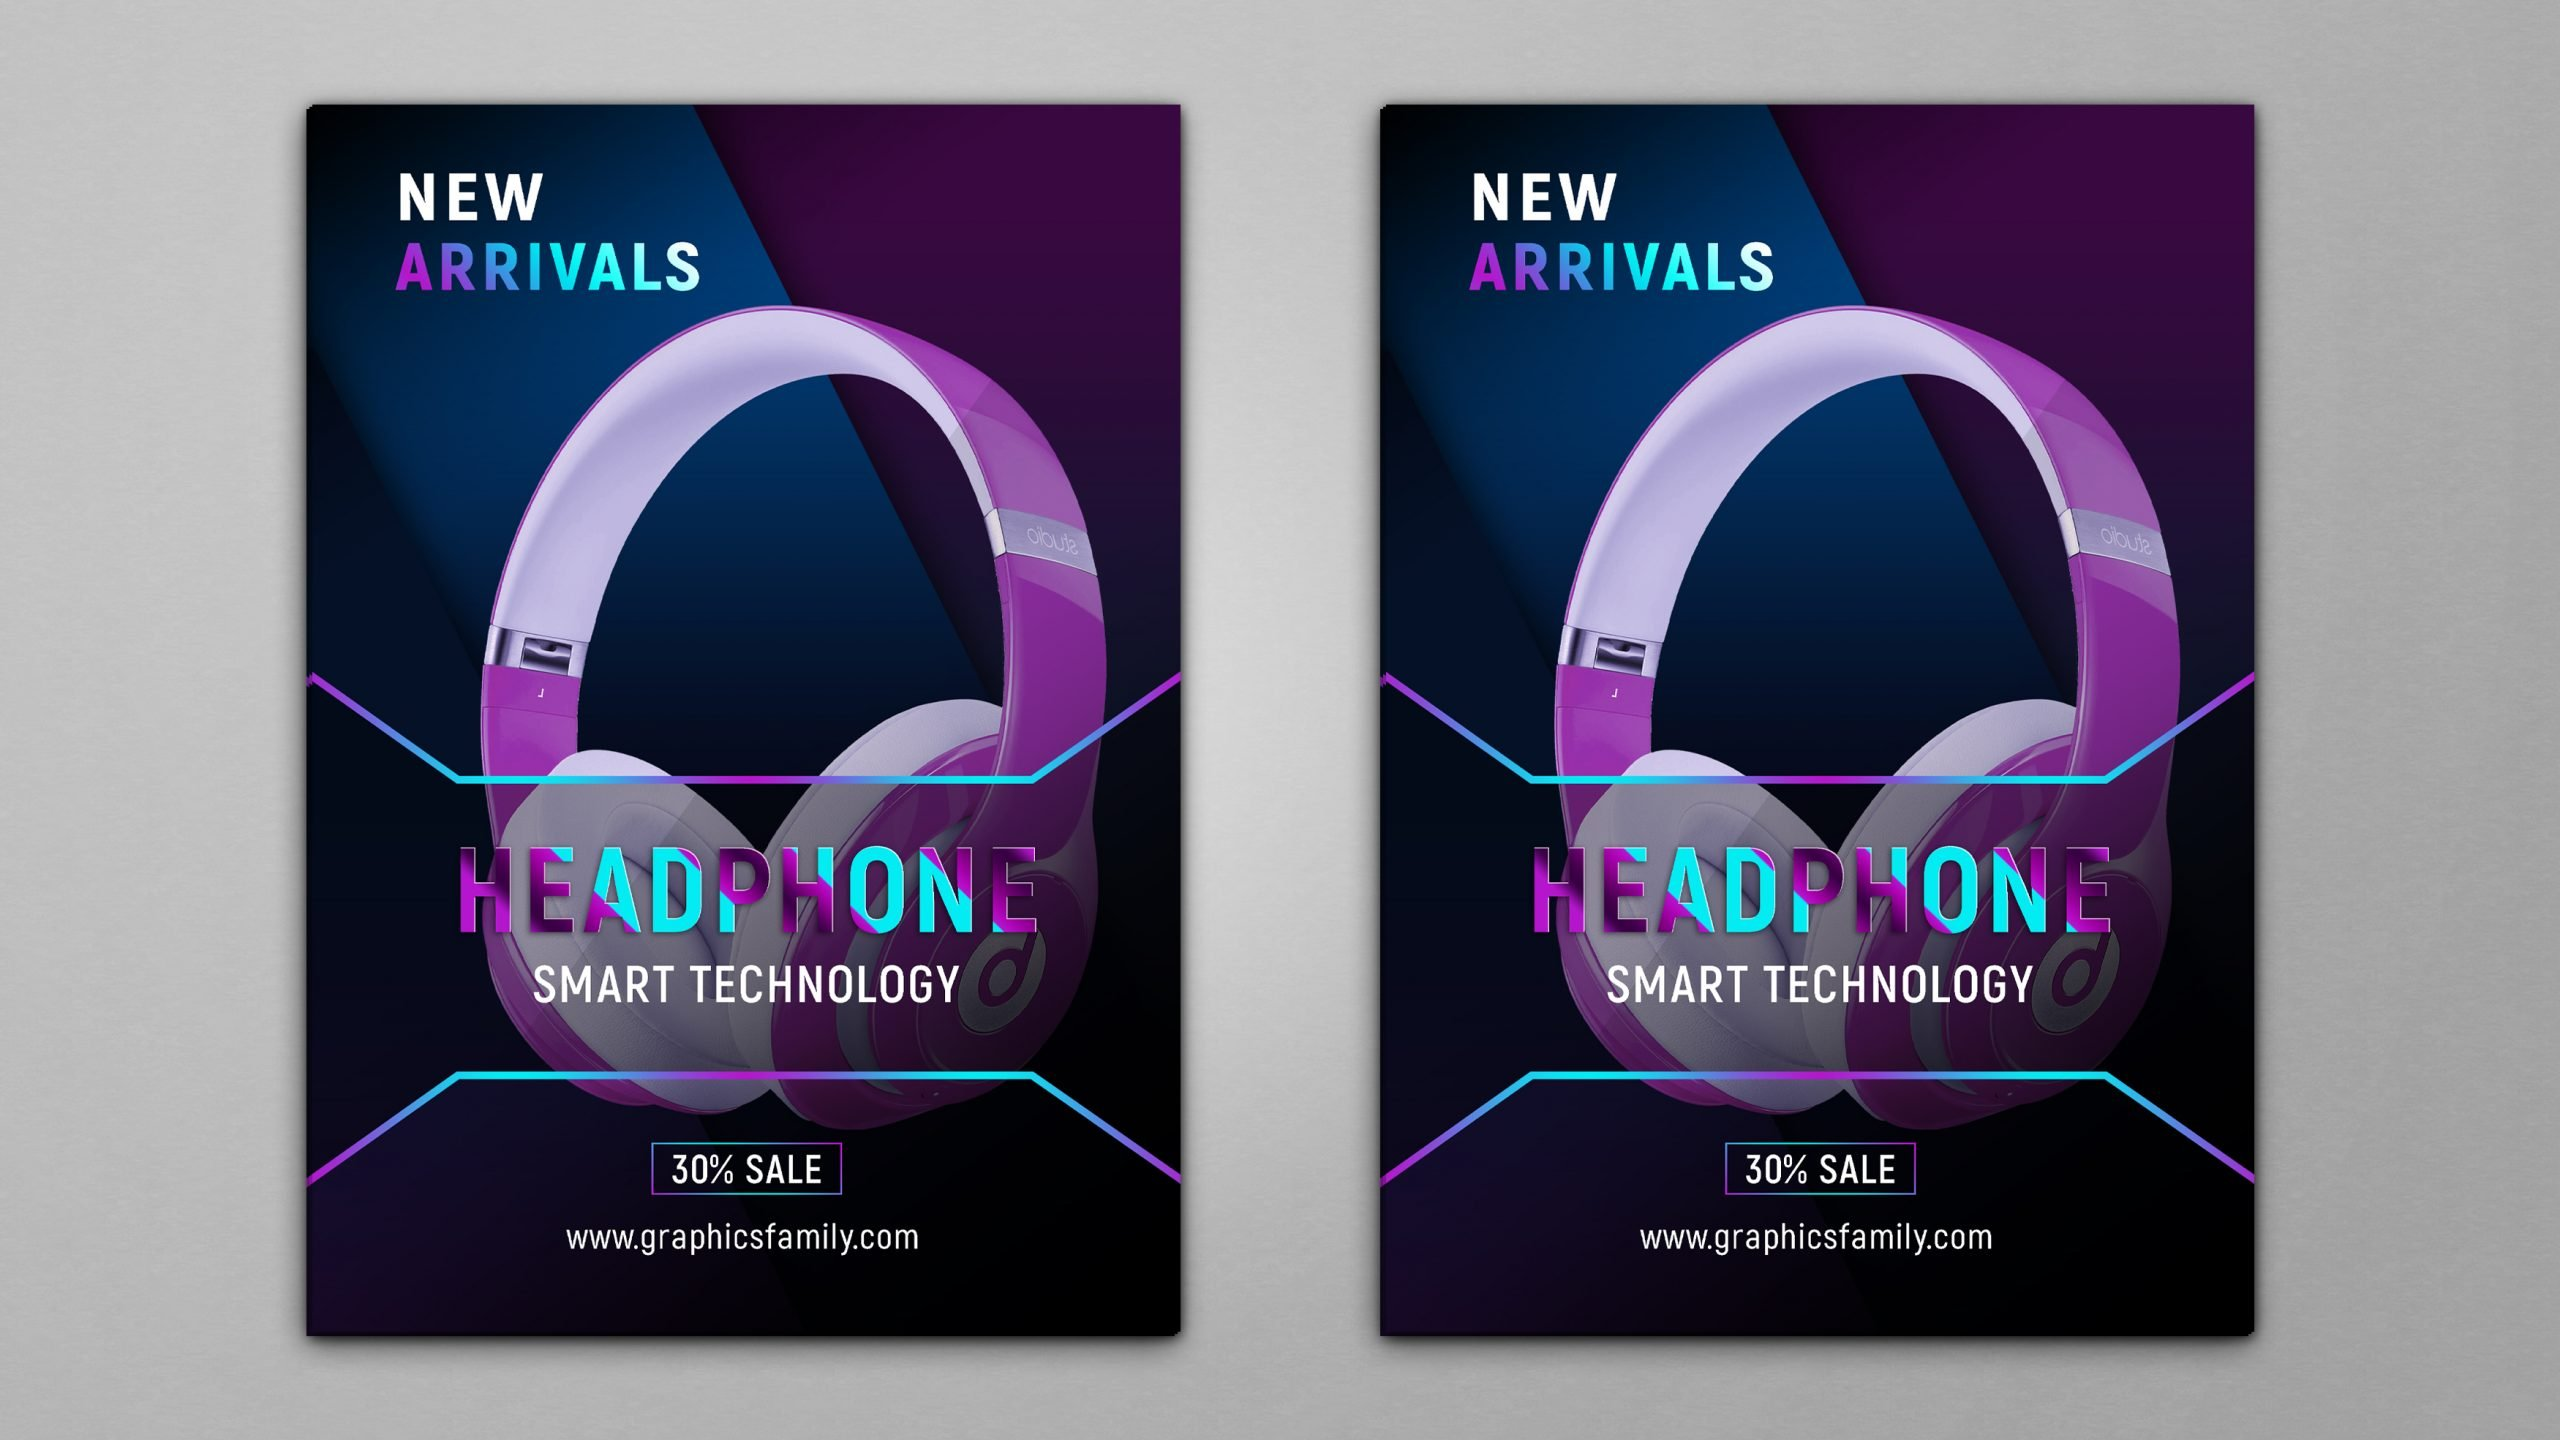 Free Headphones Flyer Design Template by GraphicsFamily